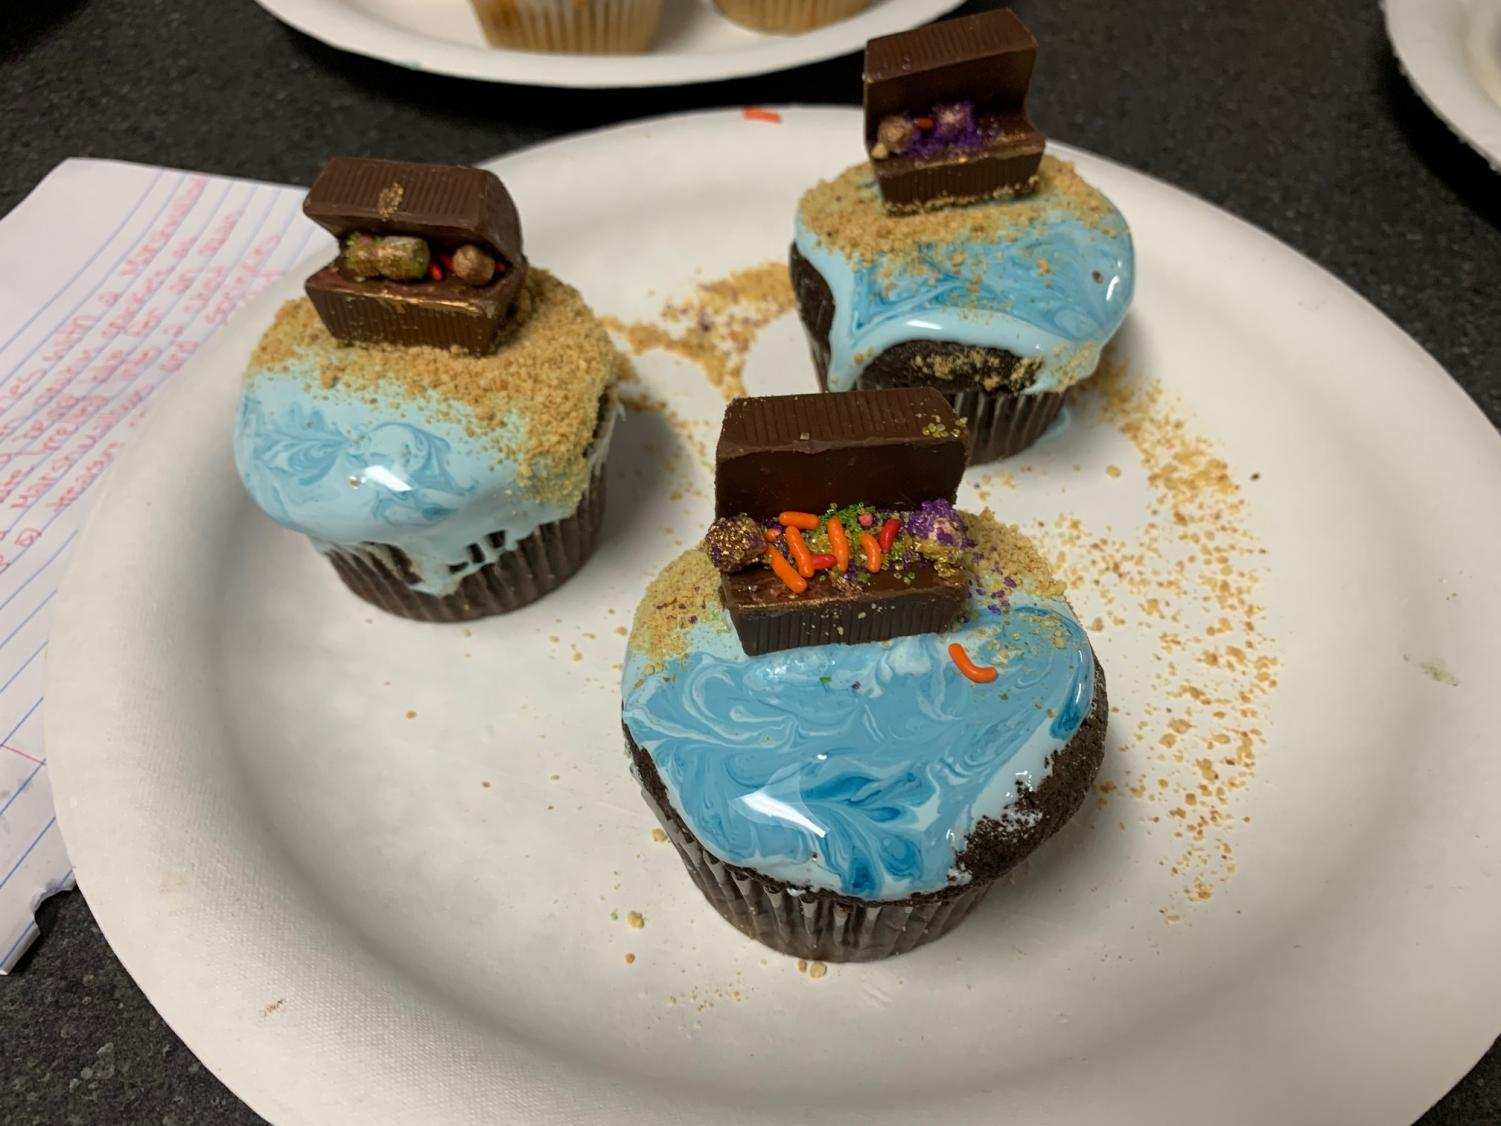 Students+follow+the+theme+of+Pirates+in+creating+a+Treasure+Chest+on+top+of+a+cupcake.+